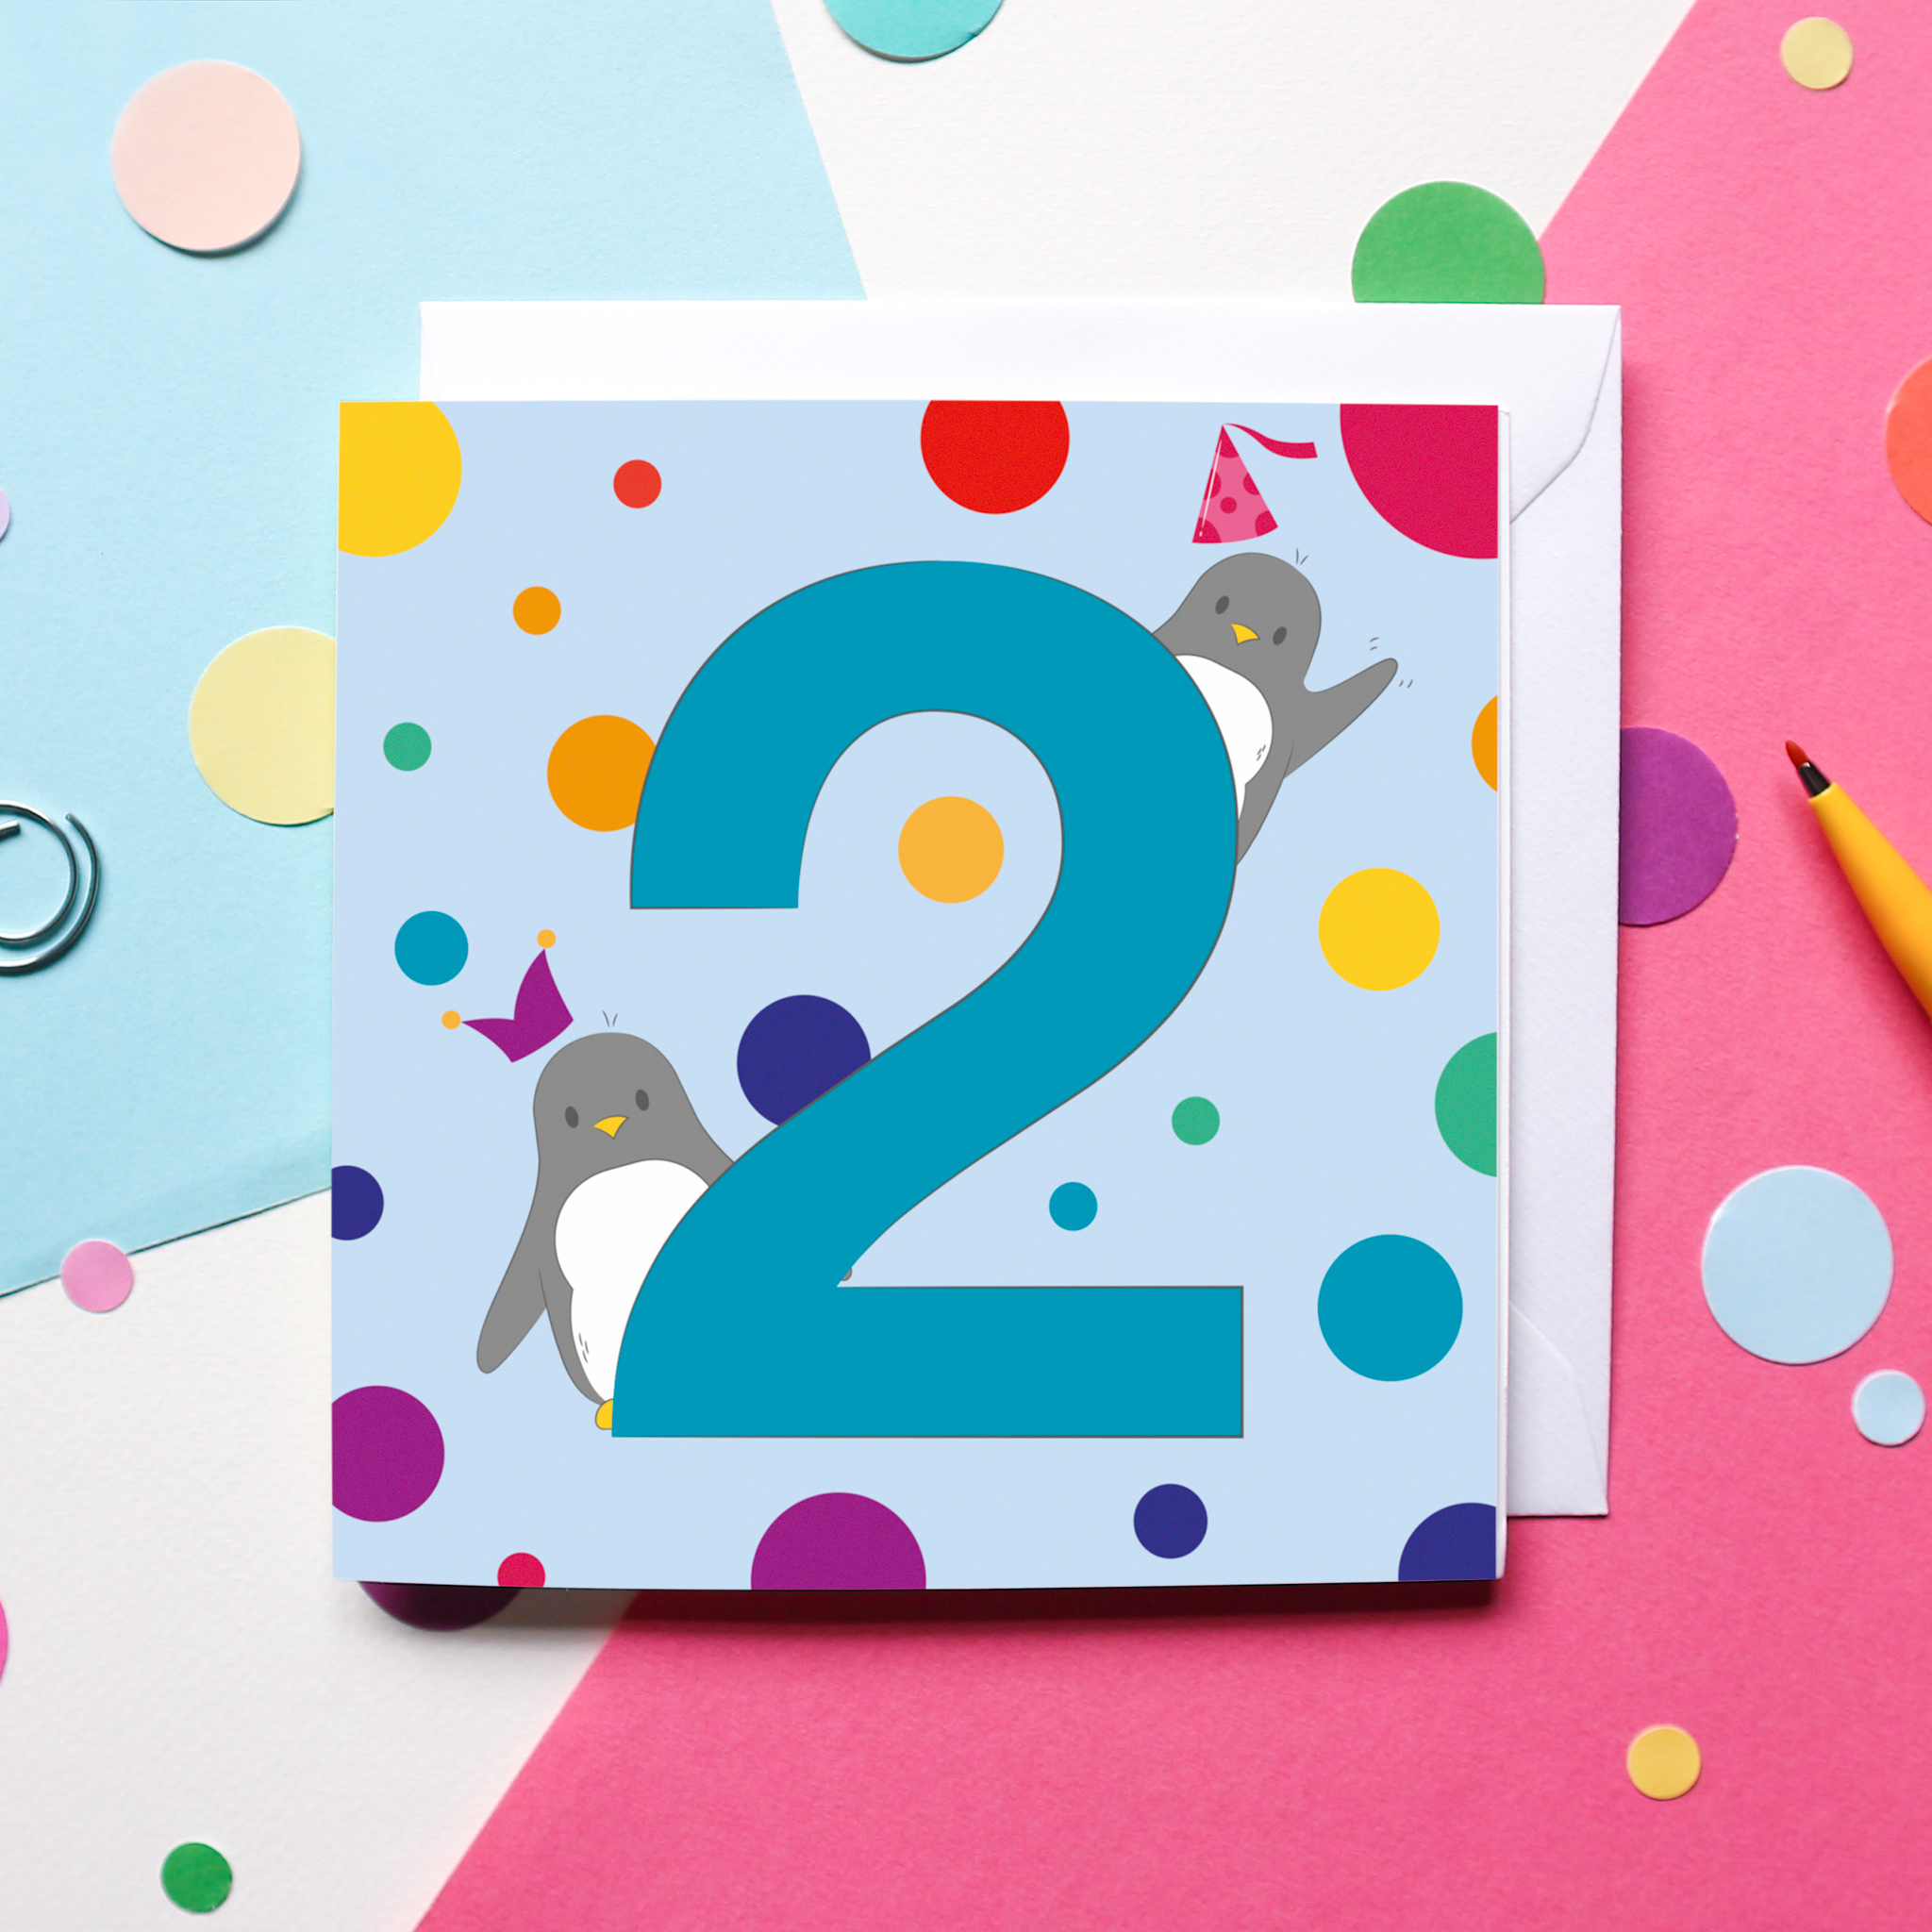 A Penguin-themed 2nd Birthday Card on a colourful background surrounded by confetti and a pen.